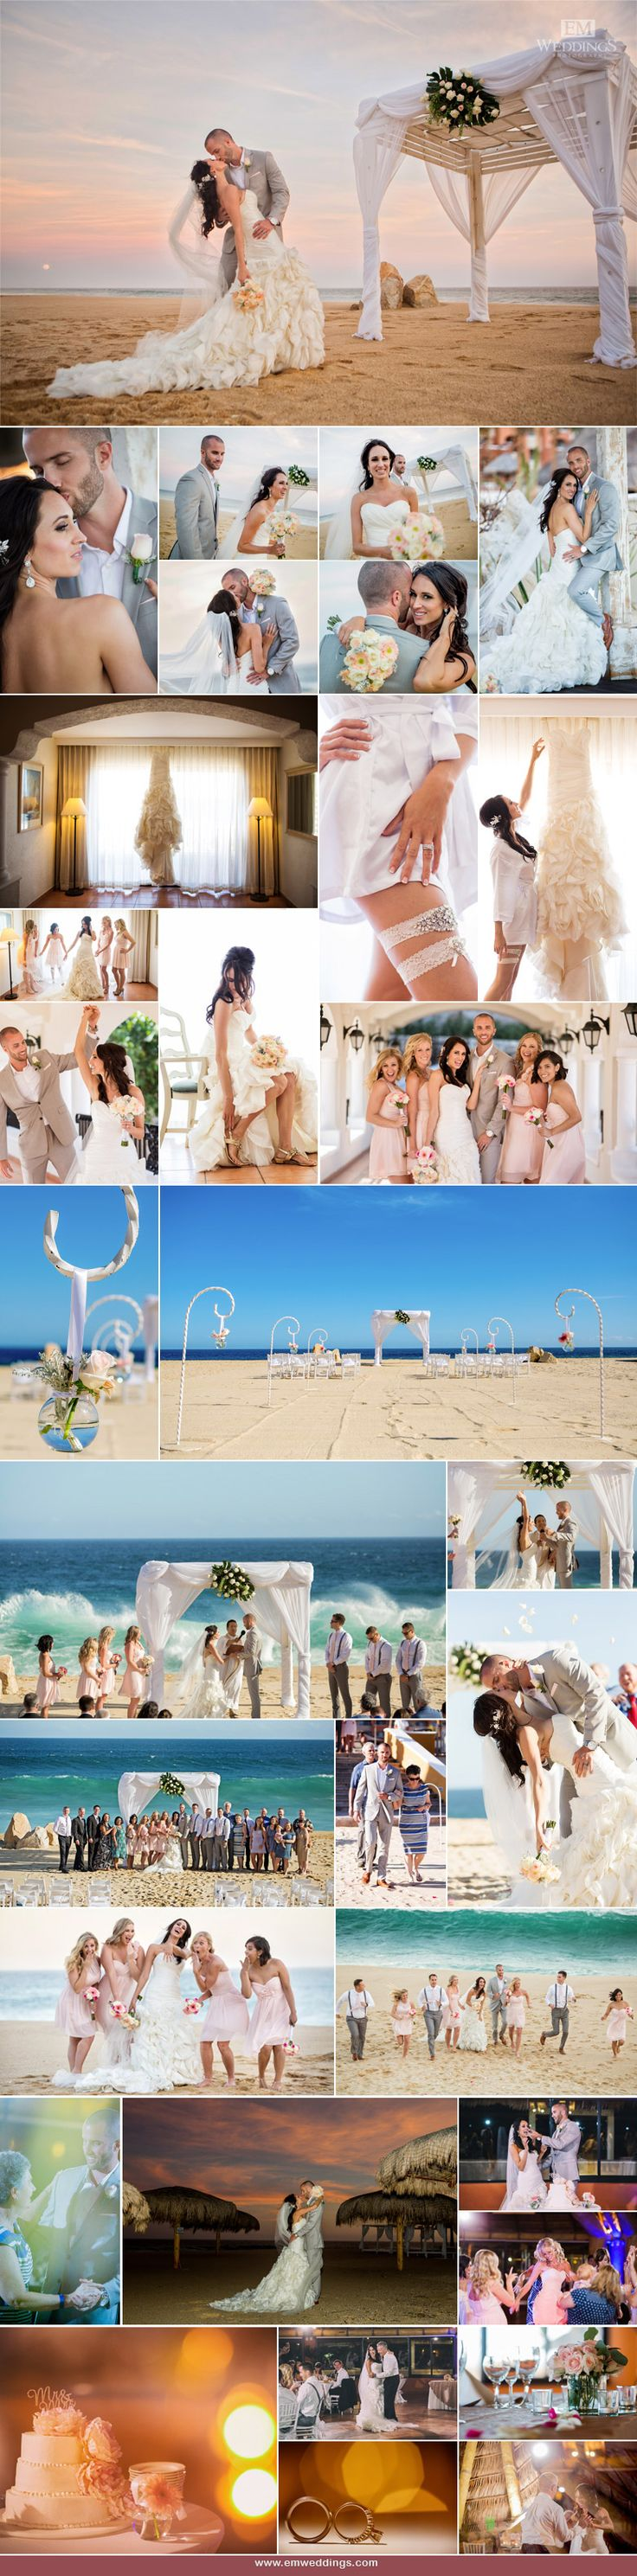 Hotel Sandos Finisterra, Los Cabos, México - Los Cabos Wedding Photographer. #emweddingsphotography #destinationweddings